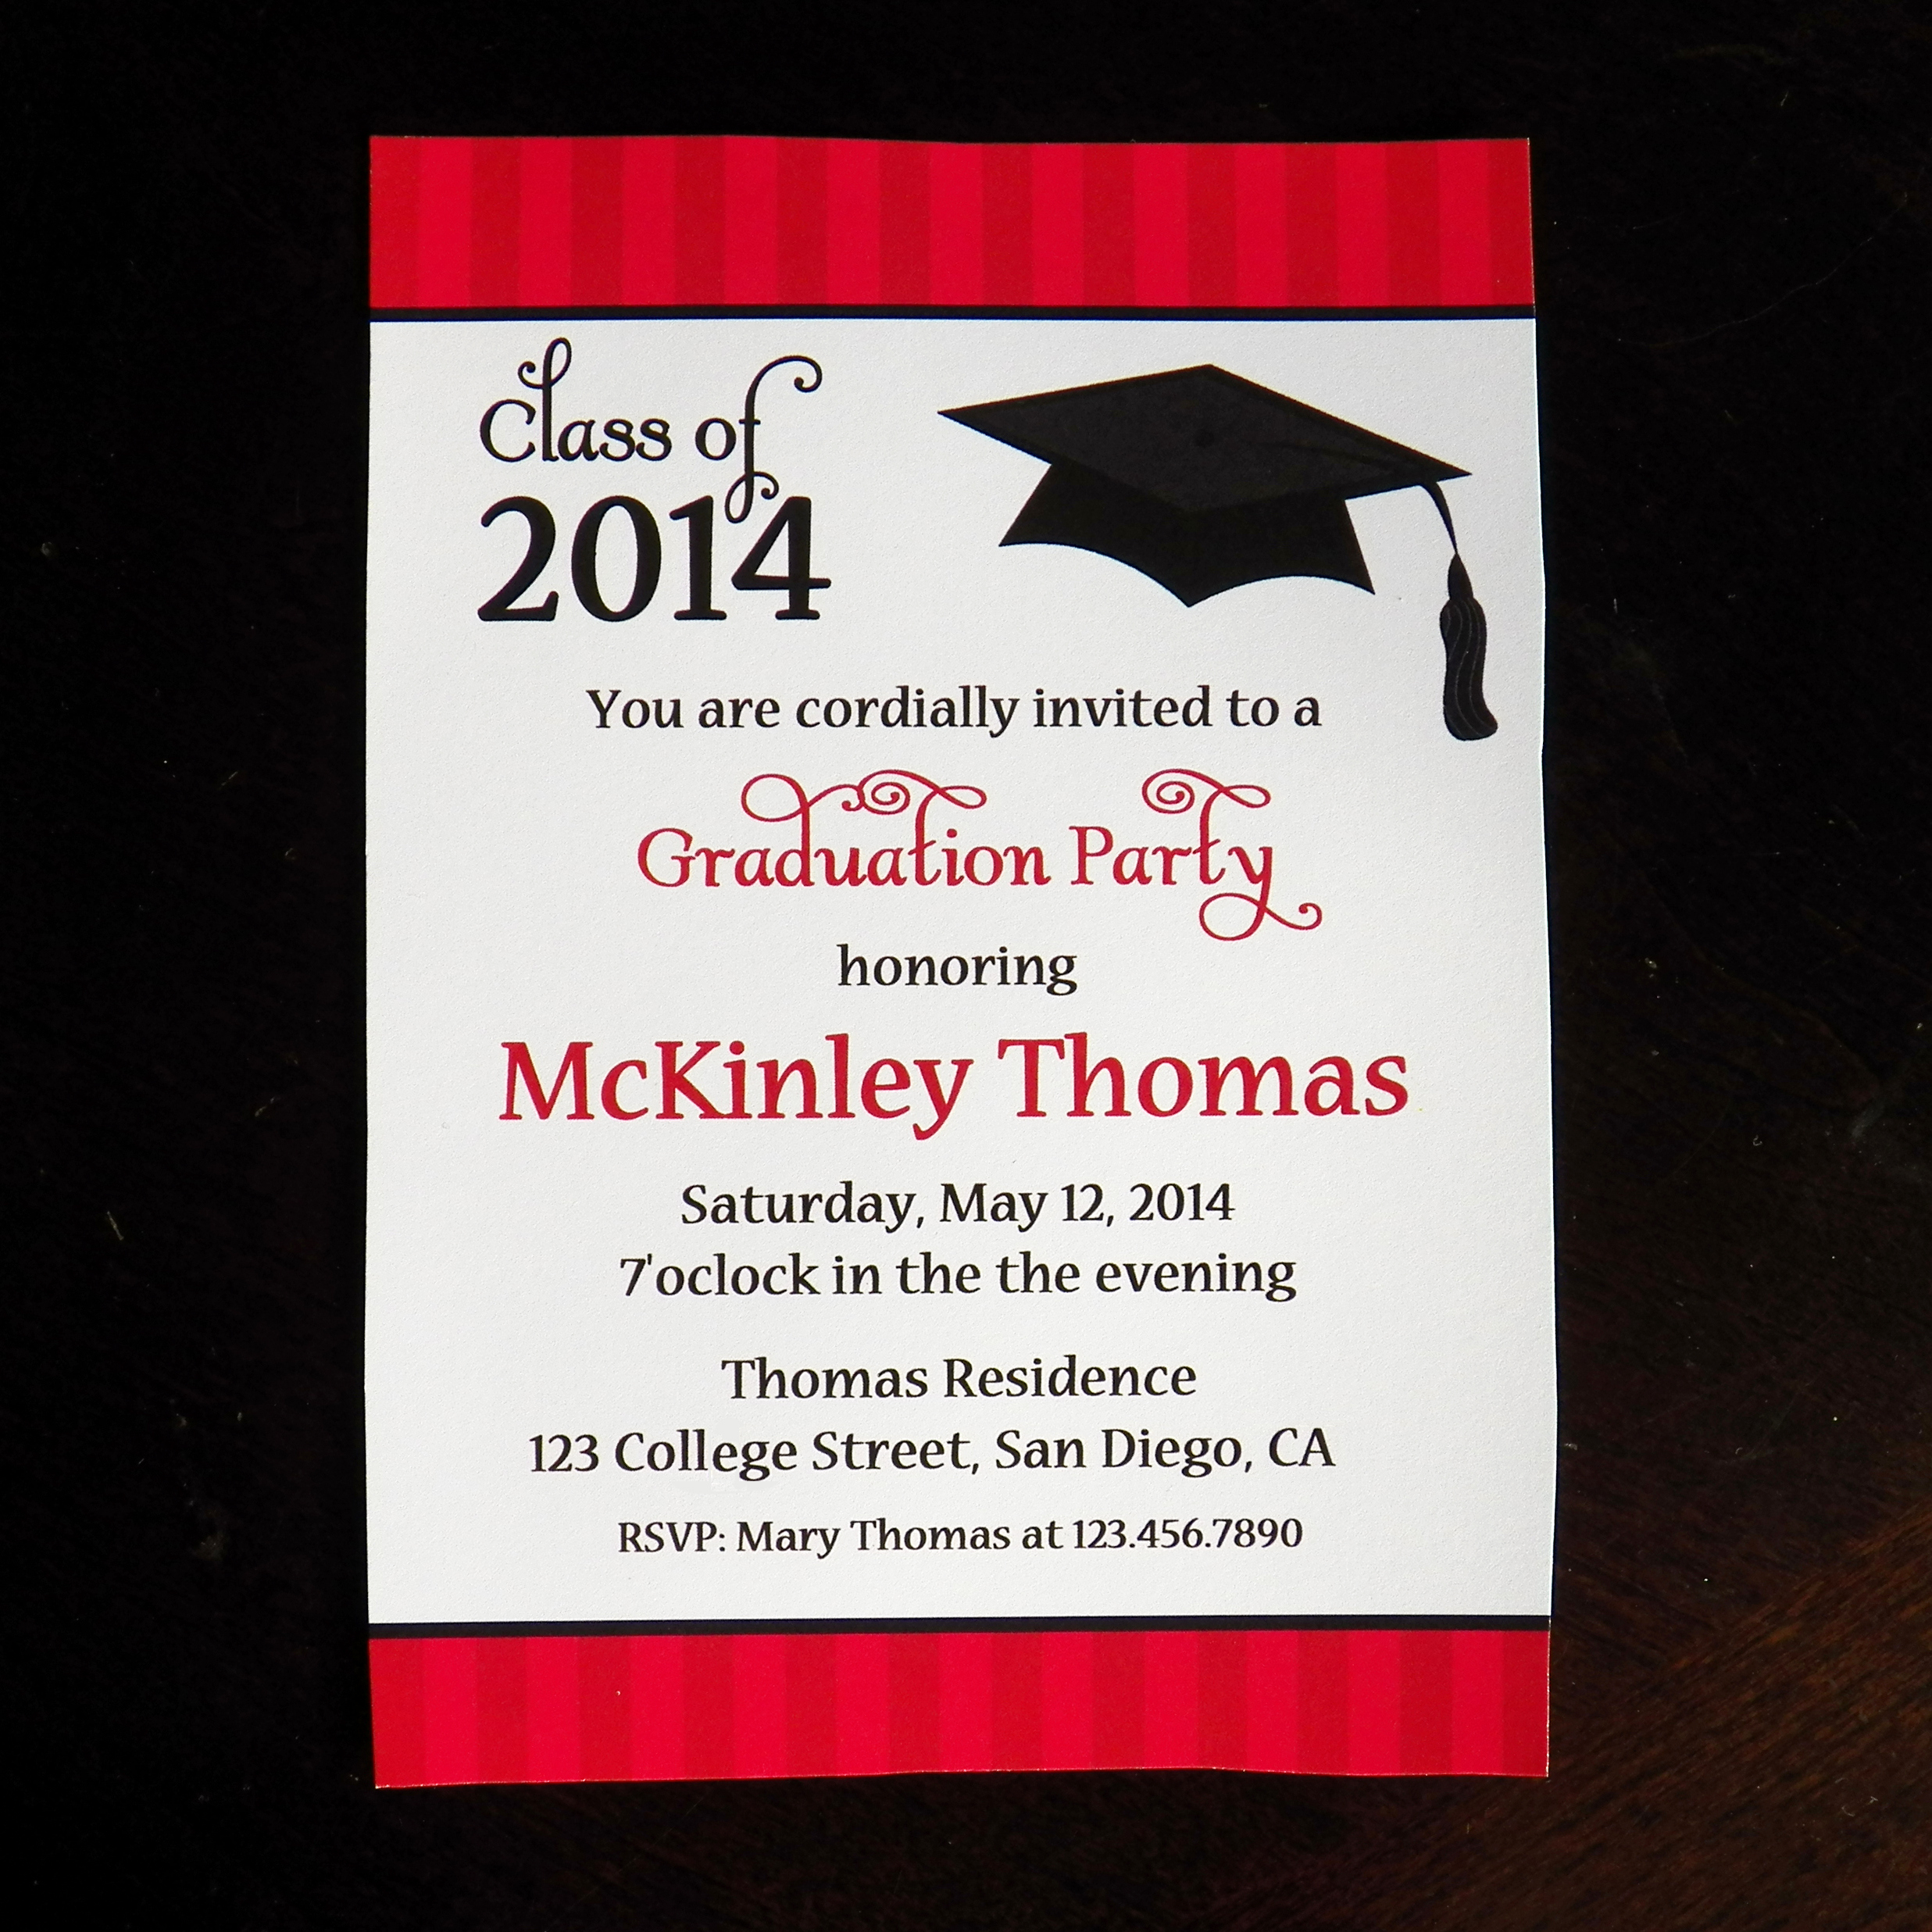 Masters Graduation Party Invitation Wording Unique Graduation Party Hats F to Mckinley that Party Chick